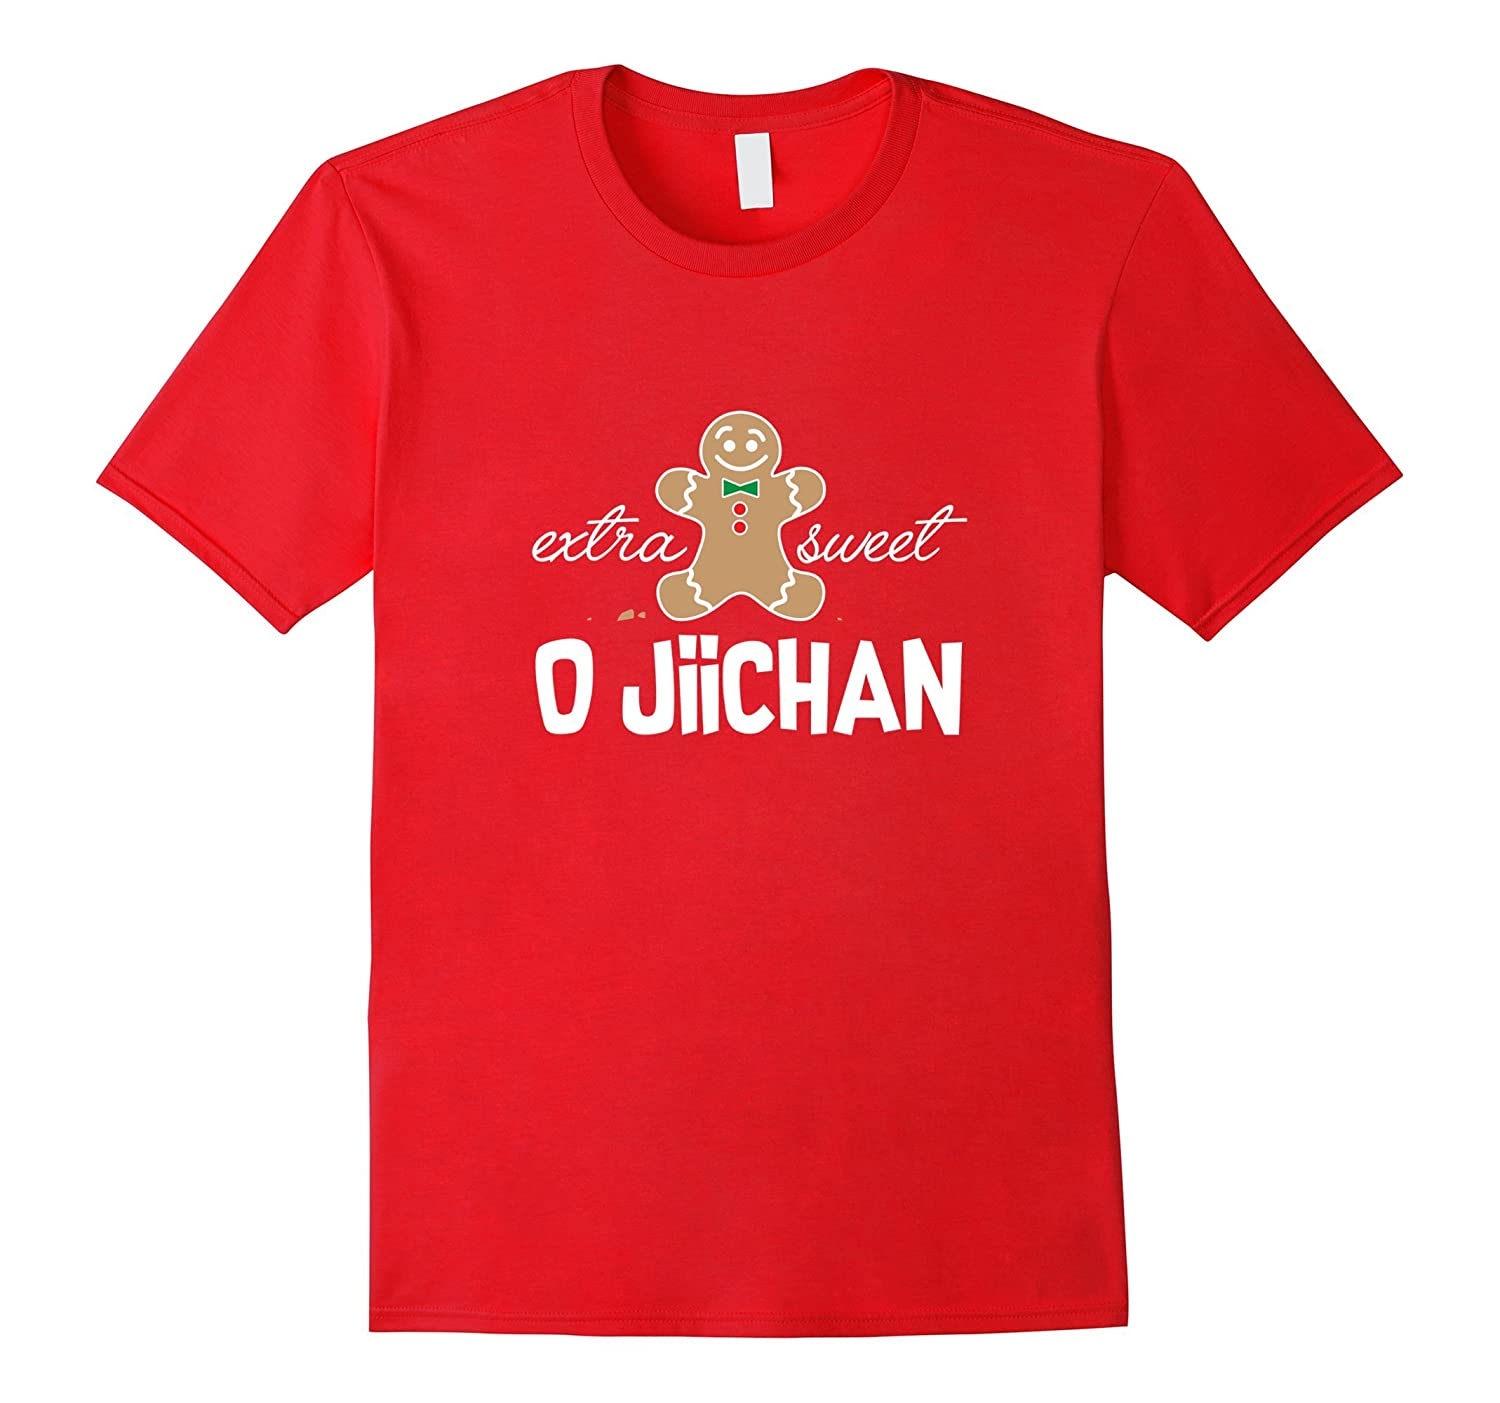 Extra Sweet O jiichan T-Shirt_ Cute Christmas Gingerbread-FL